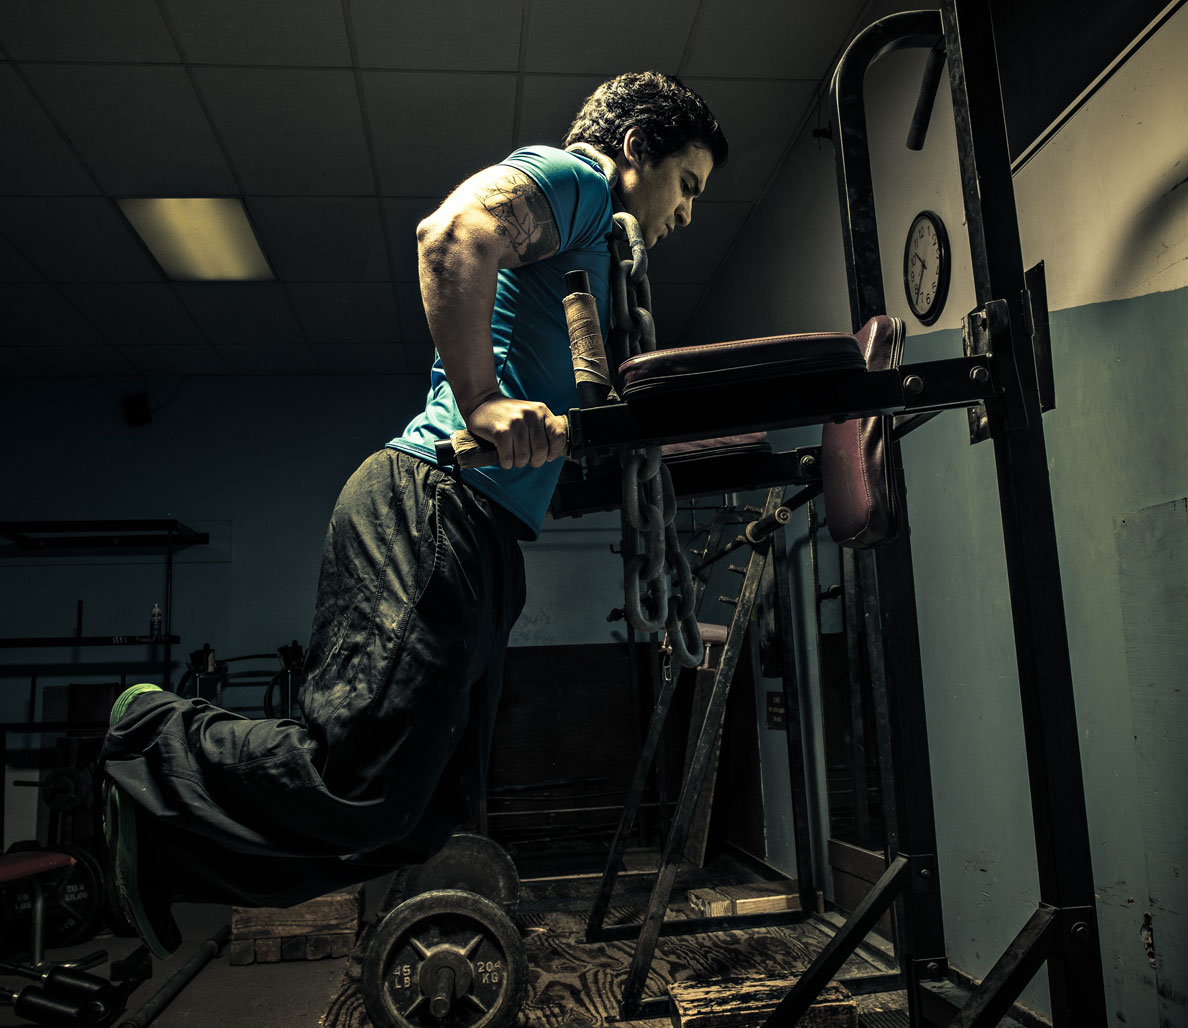 The Six Best Supersets for a Sick Pump and Serious Muscle Gains